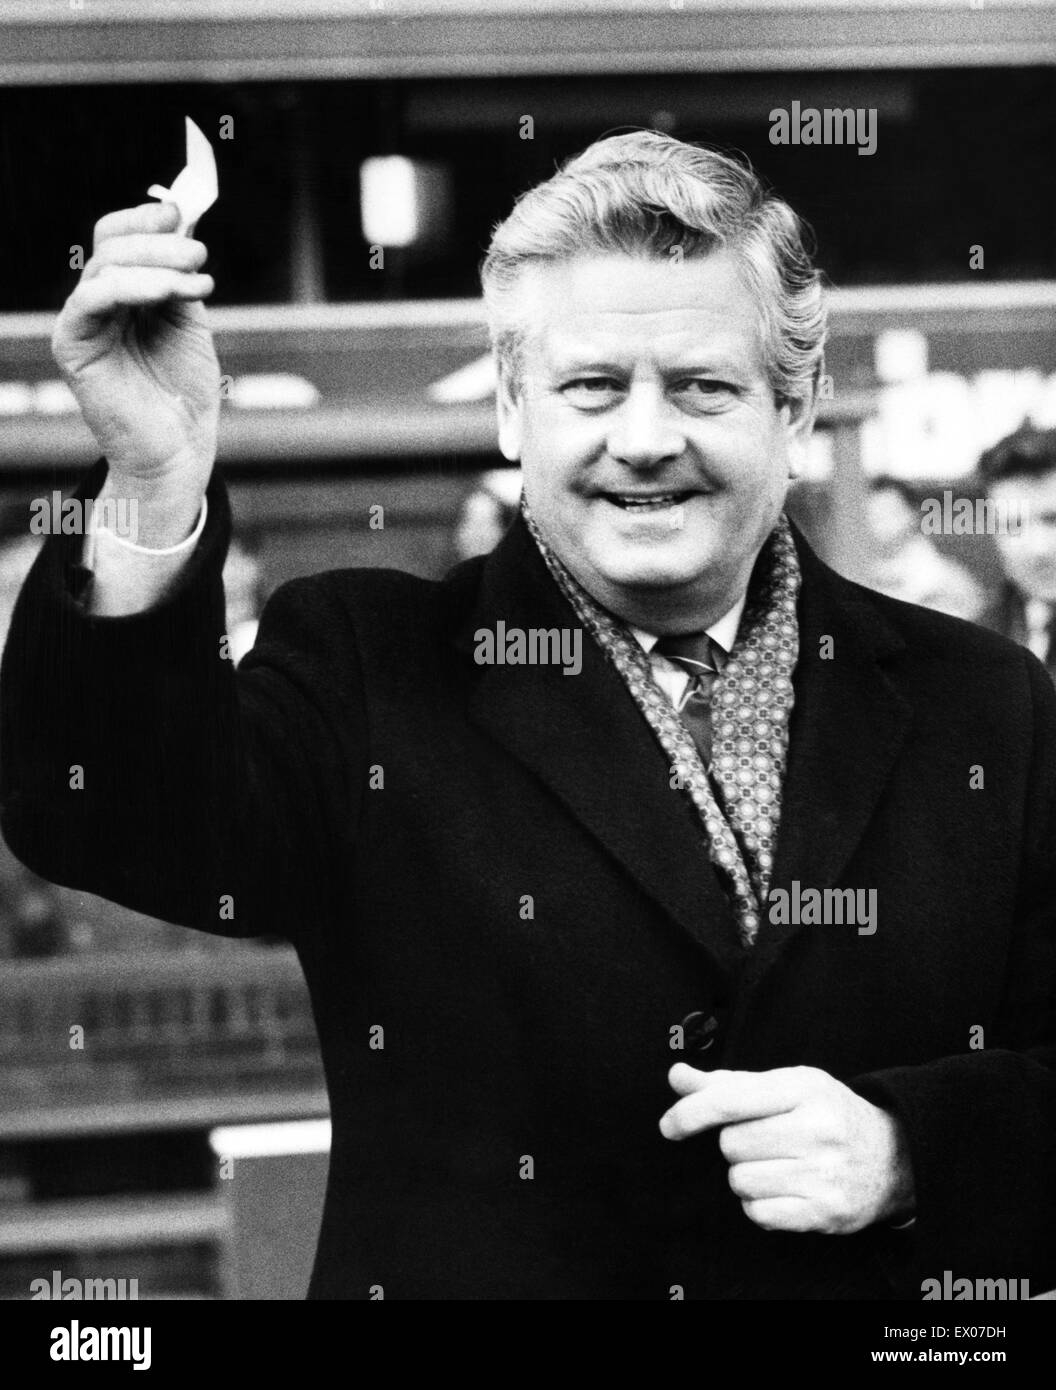 Phil Carter, Everton Chairman. 18th January 1987. - Stock Image